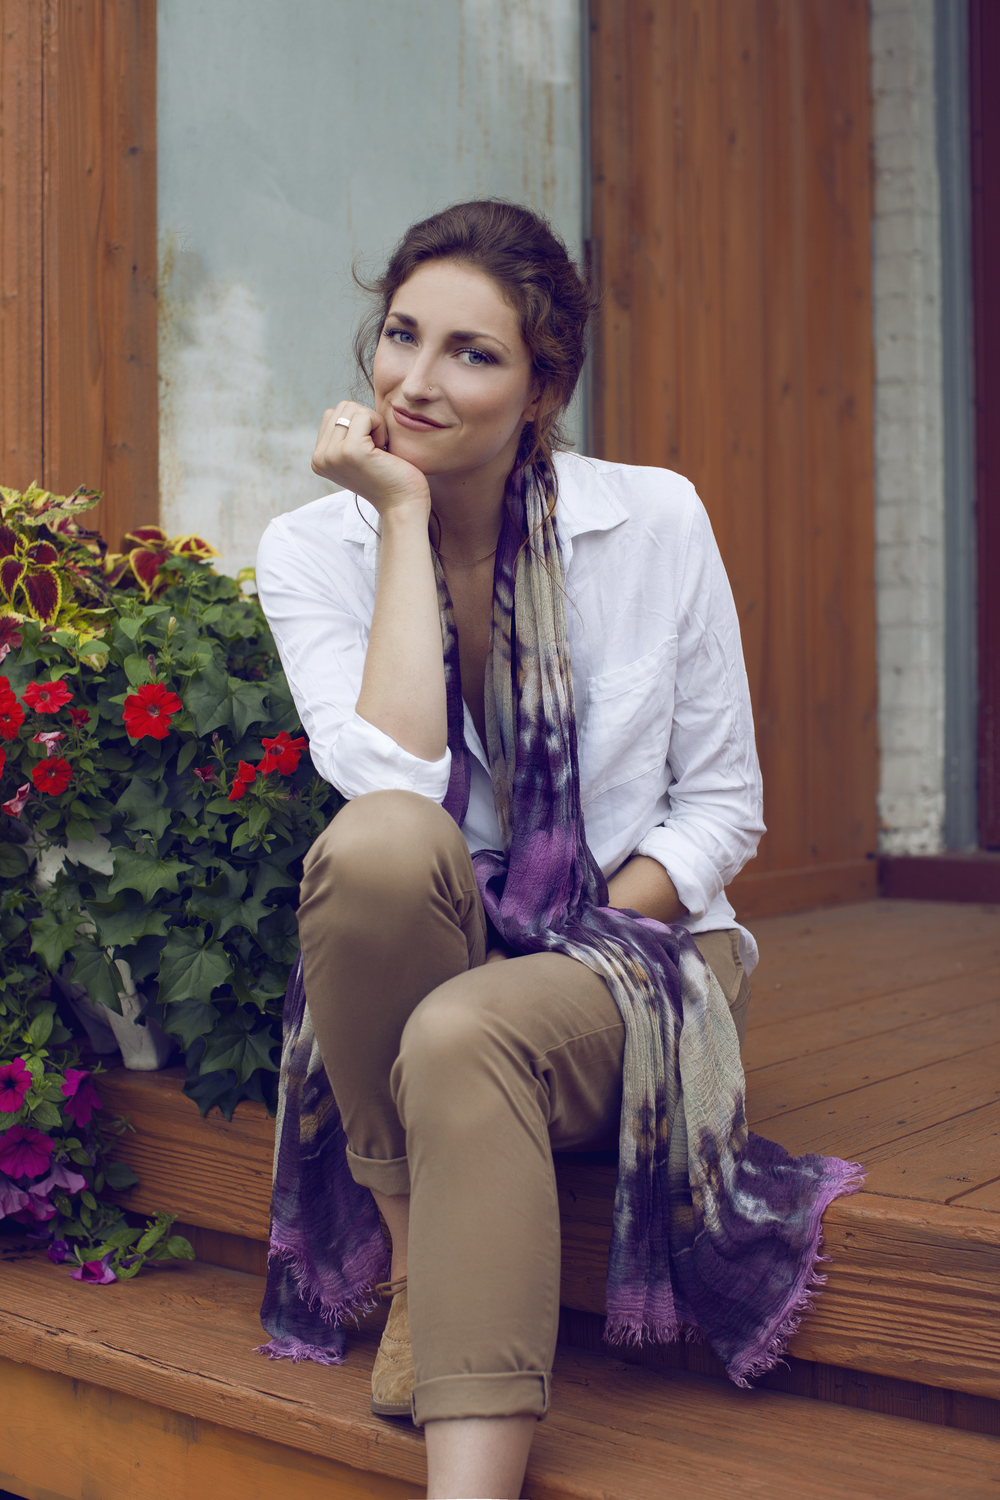 GAUZY MODAL Made of modal cotton, this sheer, oh-so-soft scarf adds delicate detail to your everyday look. The gauzy modal has an air of casual elegance which makes it equally at home with a pair of jeans, or your little black dress. For the more adventurous self-stylists, tie it into a trendy vest, style as a chic beach cover-up, or fashion into fabulous head-wrap!